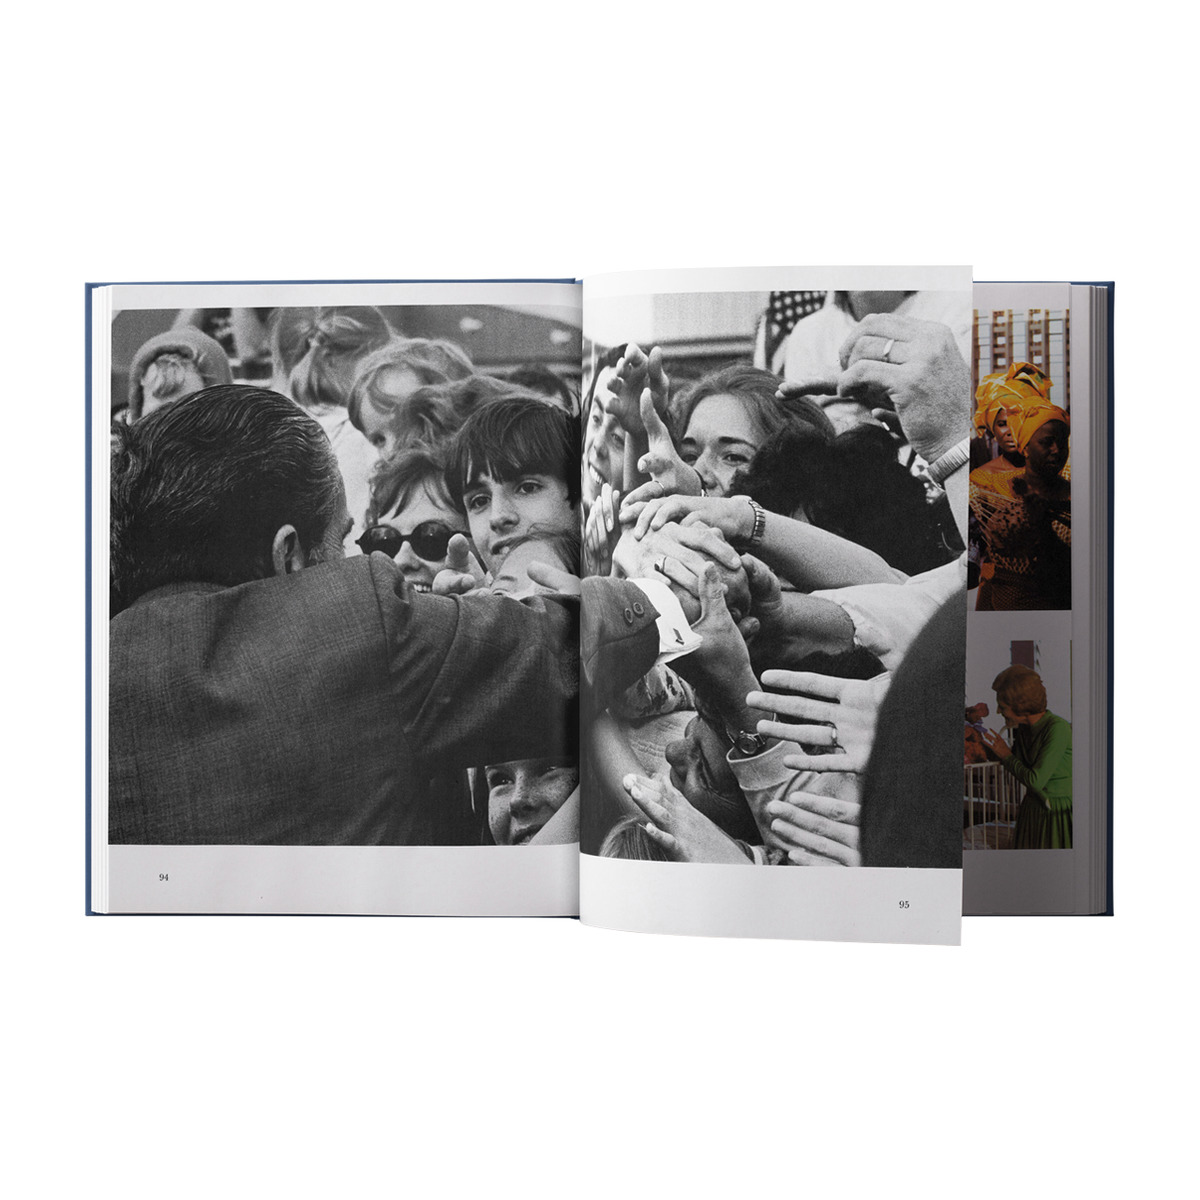 Find Beverly Nixon On Pinterest: Eye On Nixon: A Photographic Study Of The President And